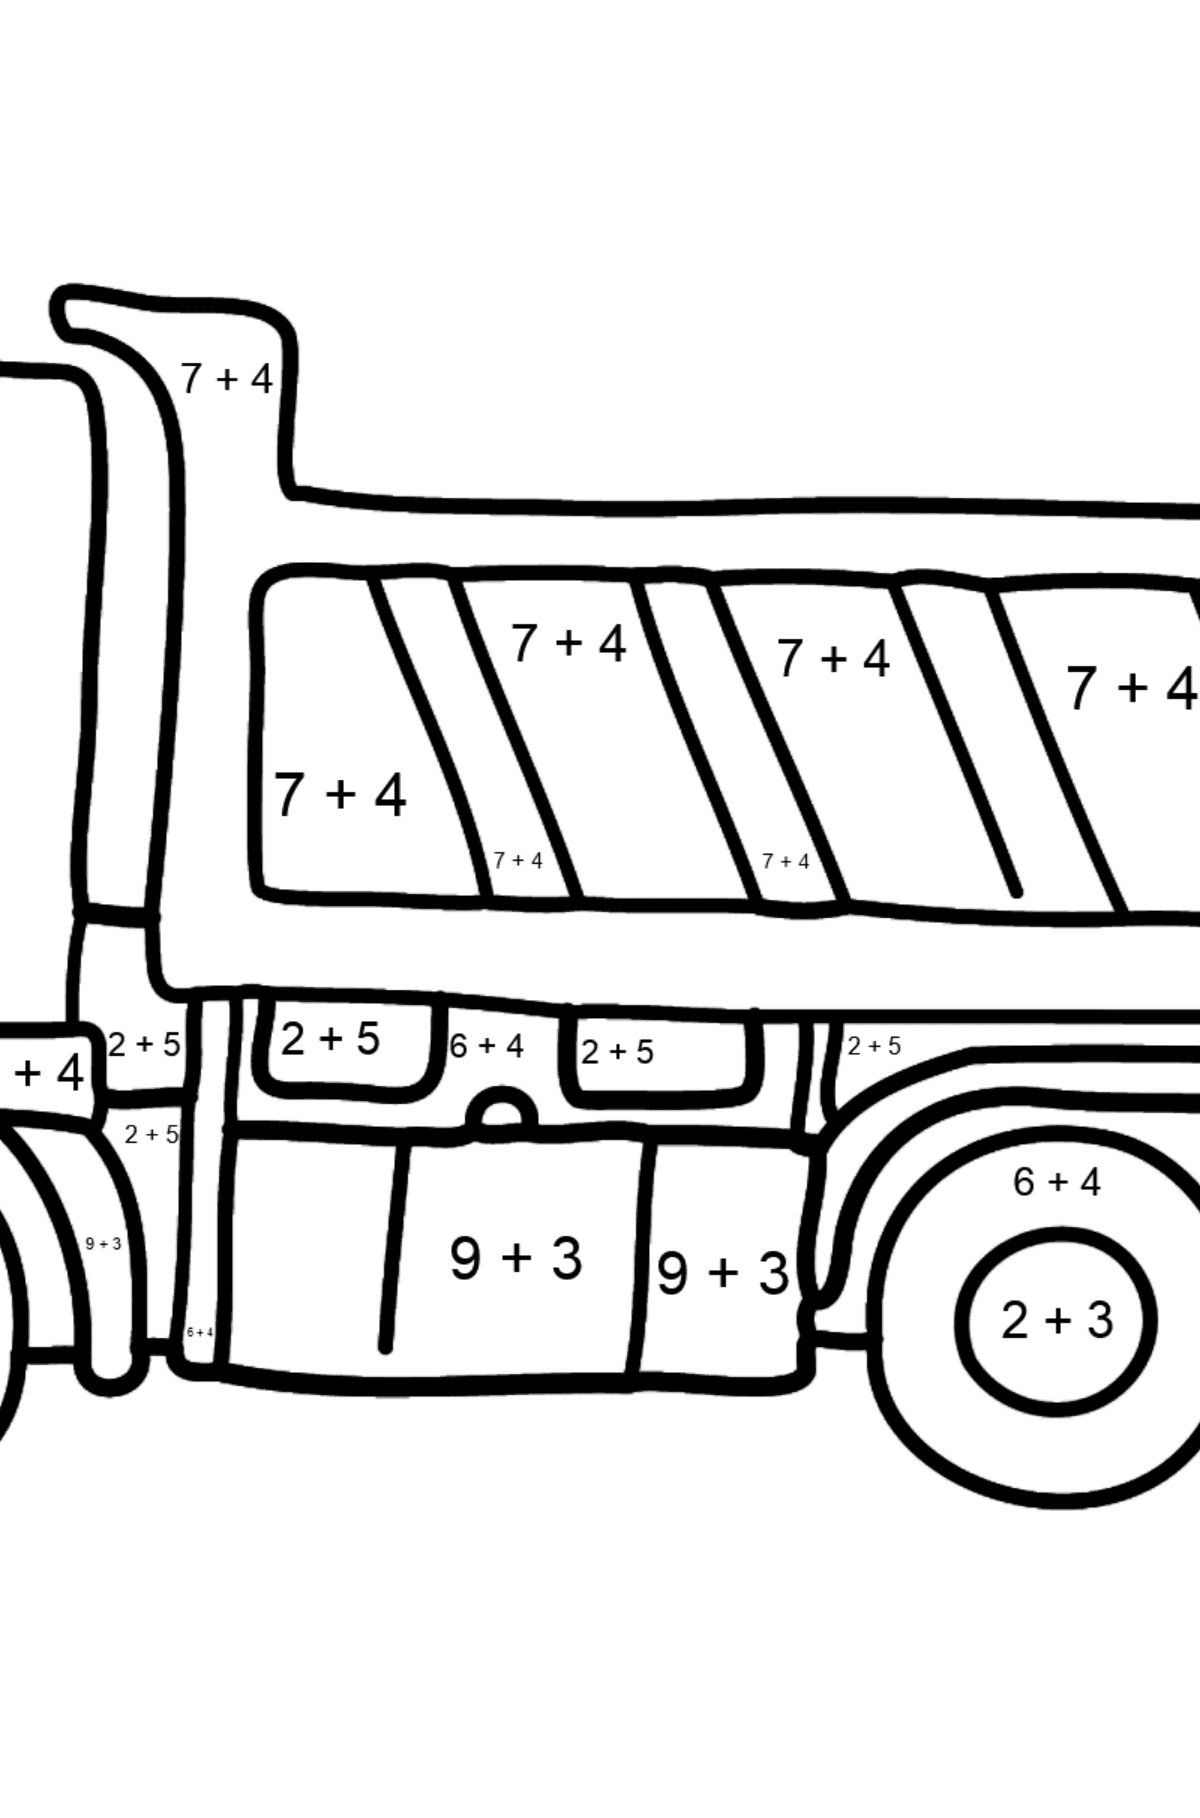 Coloring Page - A Dump Truck - Math Coloring - Addition for Kids